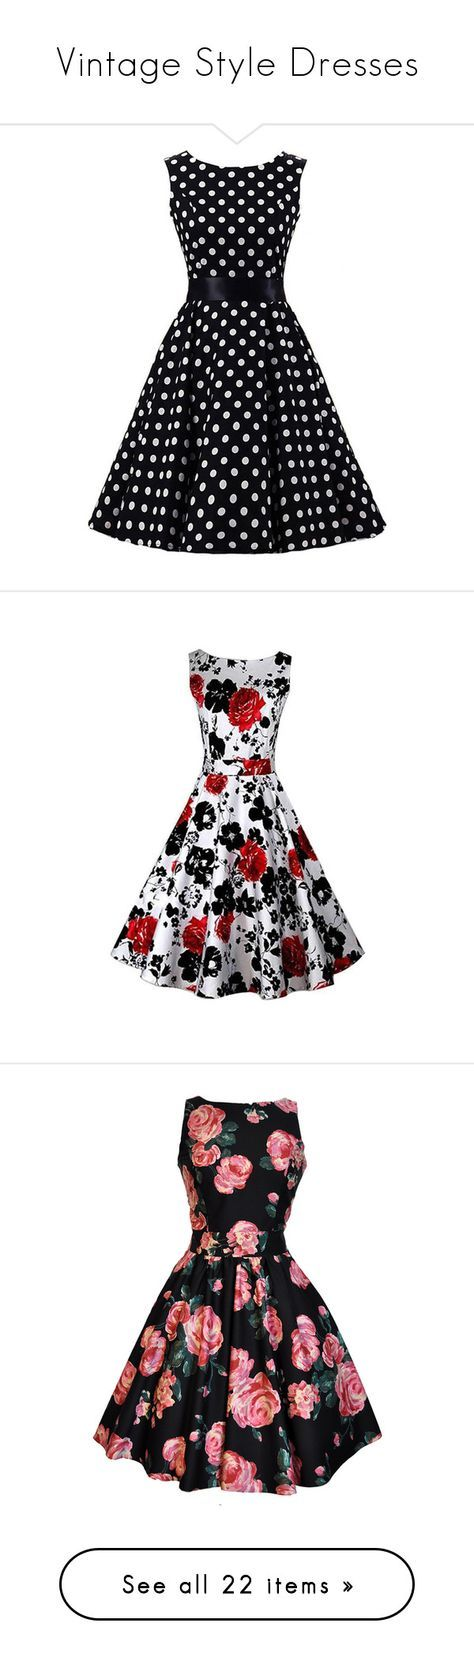 """""""Vintage Style Dresses"""" by adahgab ❤ liked on Polyvore featuring dresses, no sleeve dress, blue sleeveless dress, dot dress, blue polka dot dress, blue dress, robes, floral, vestidos i white"""